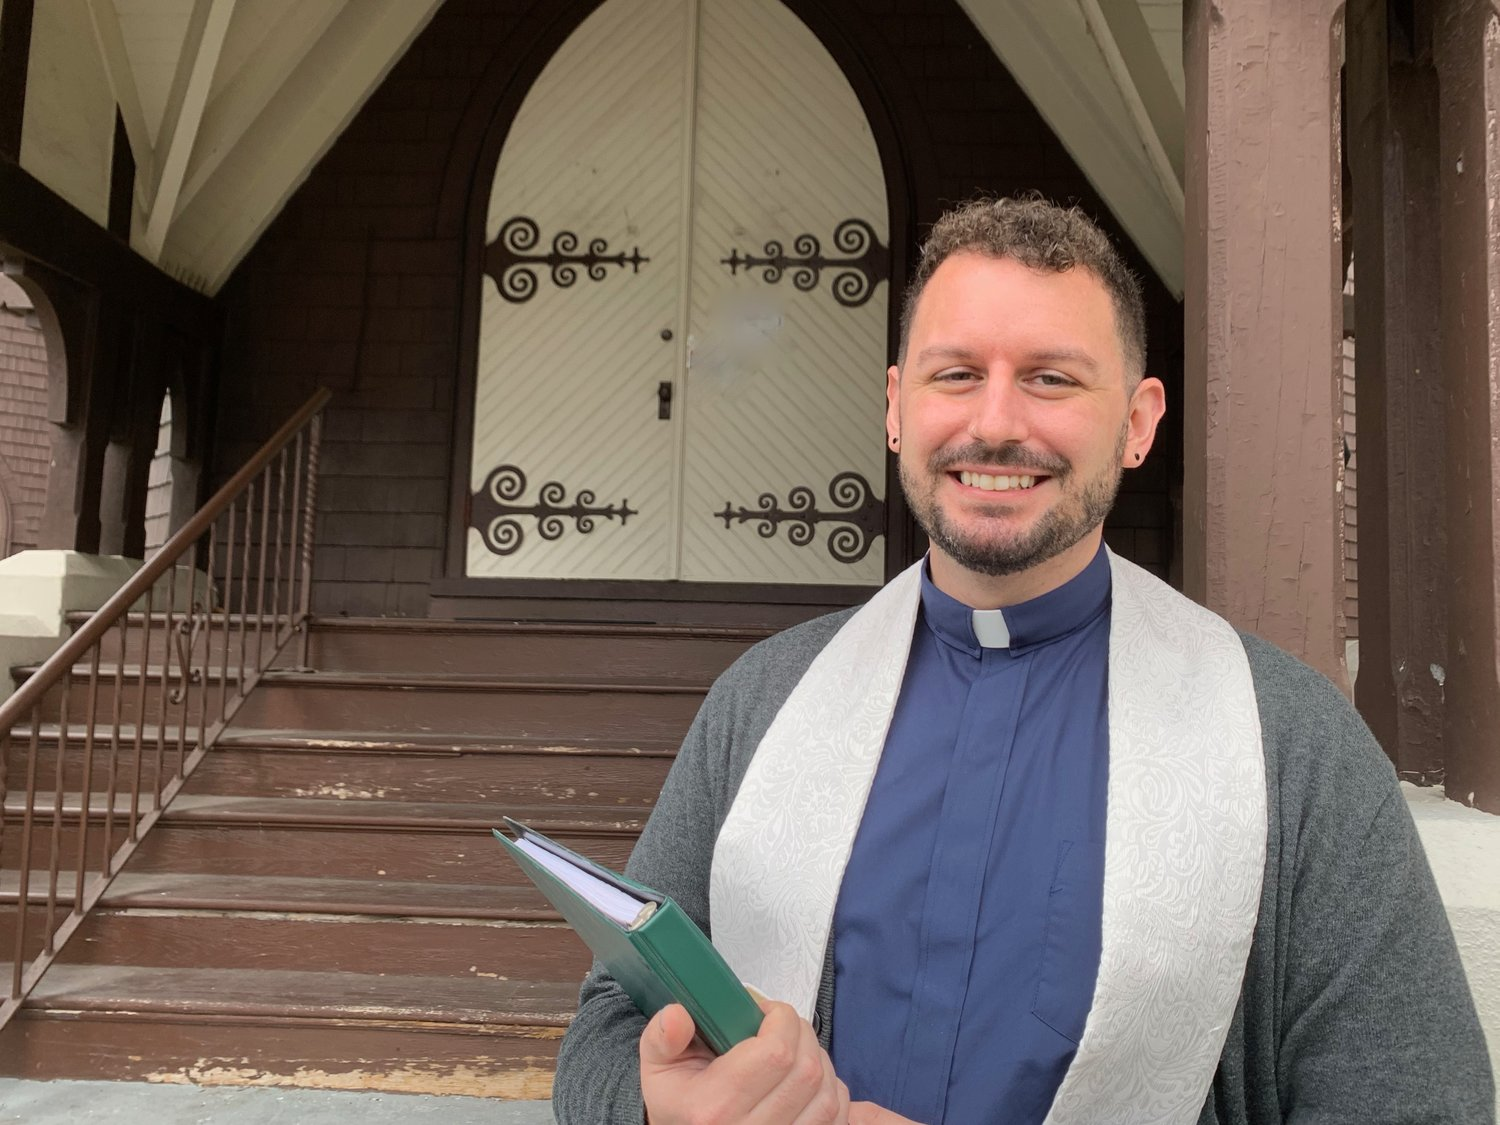 The Rev. Lance Hurst, 30, became pastor of First Presbyterian Church of Glen Cove on Nov. 1.